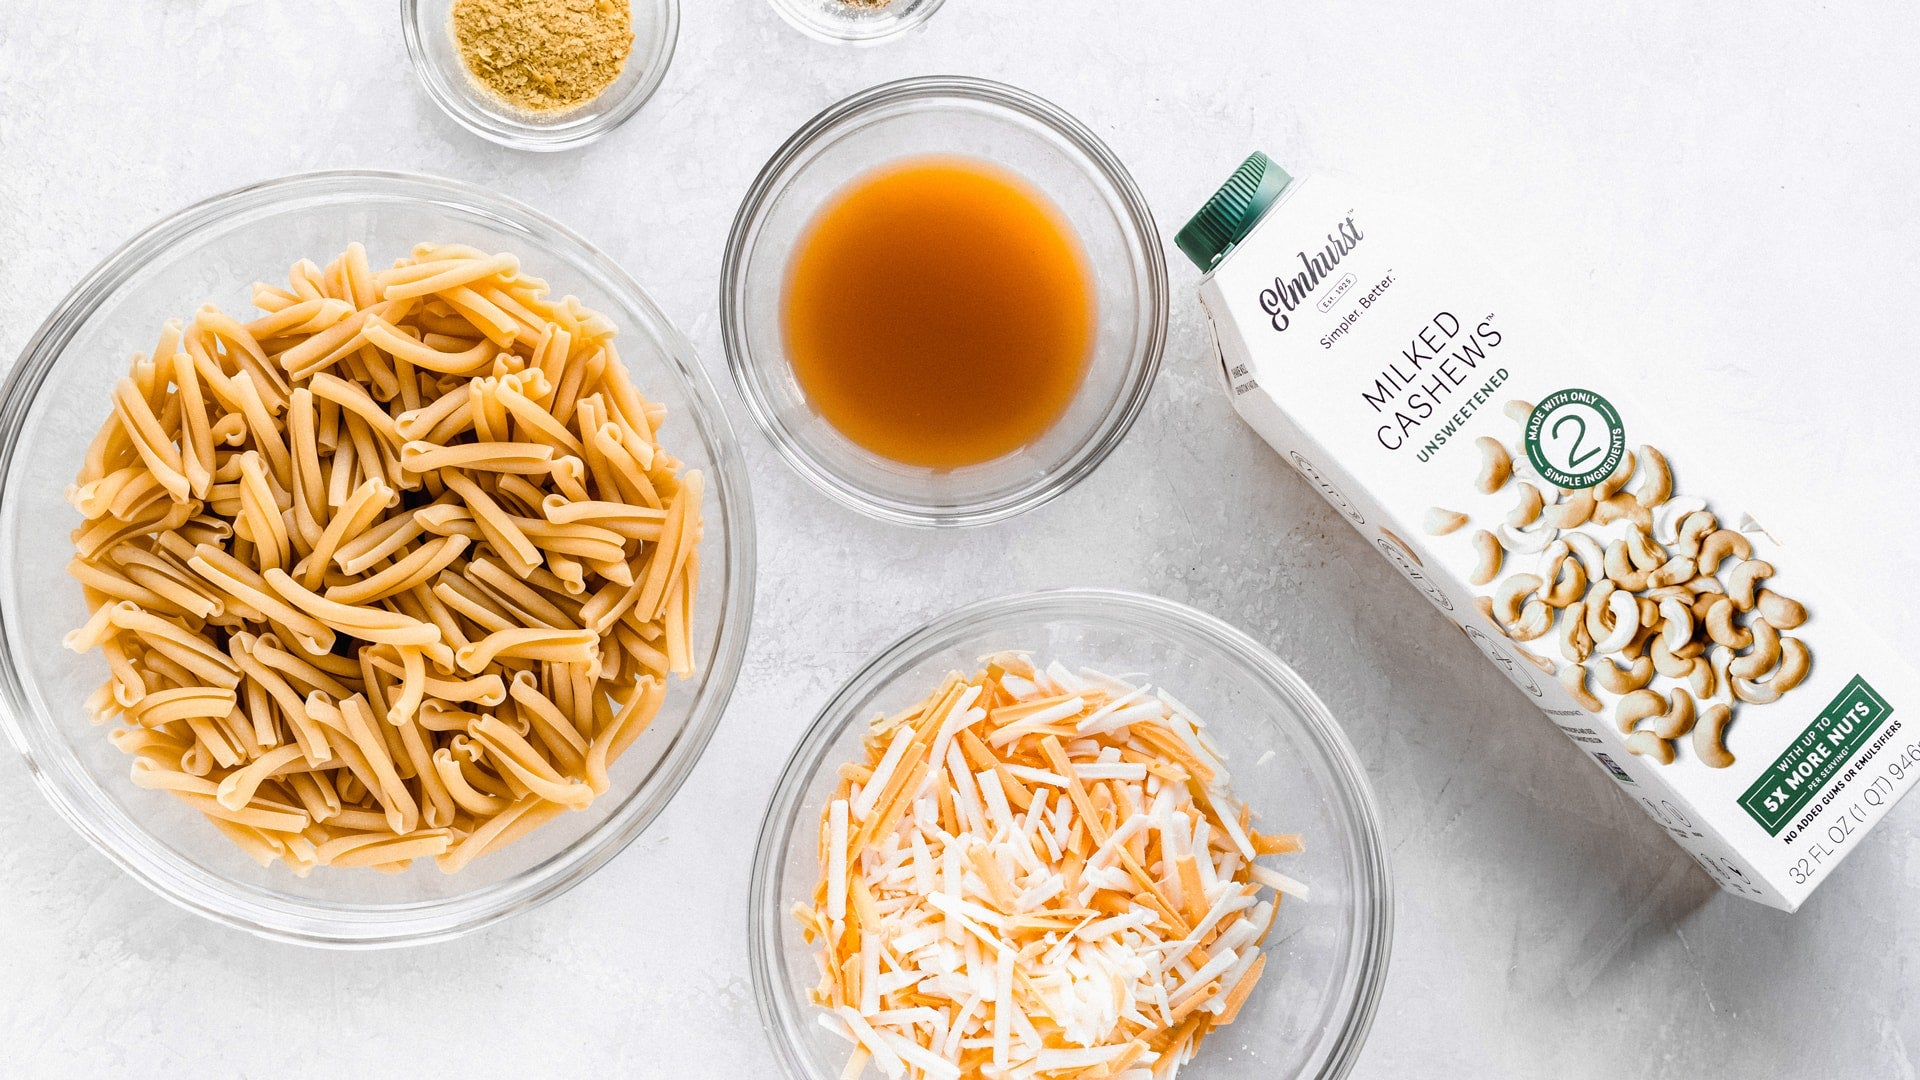 a bowl of dry pasta, mixed shredded cheese and a carton of cashew milk